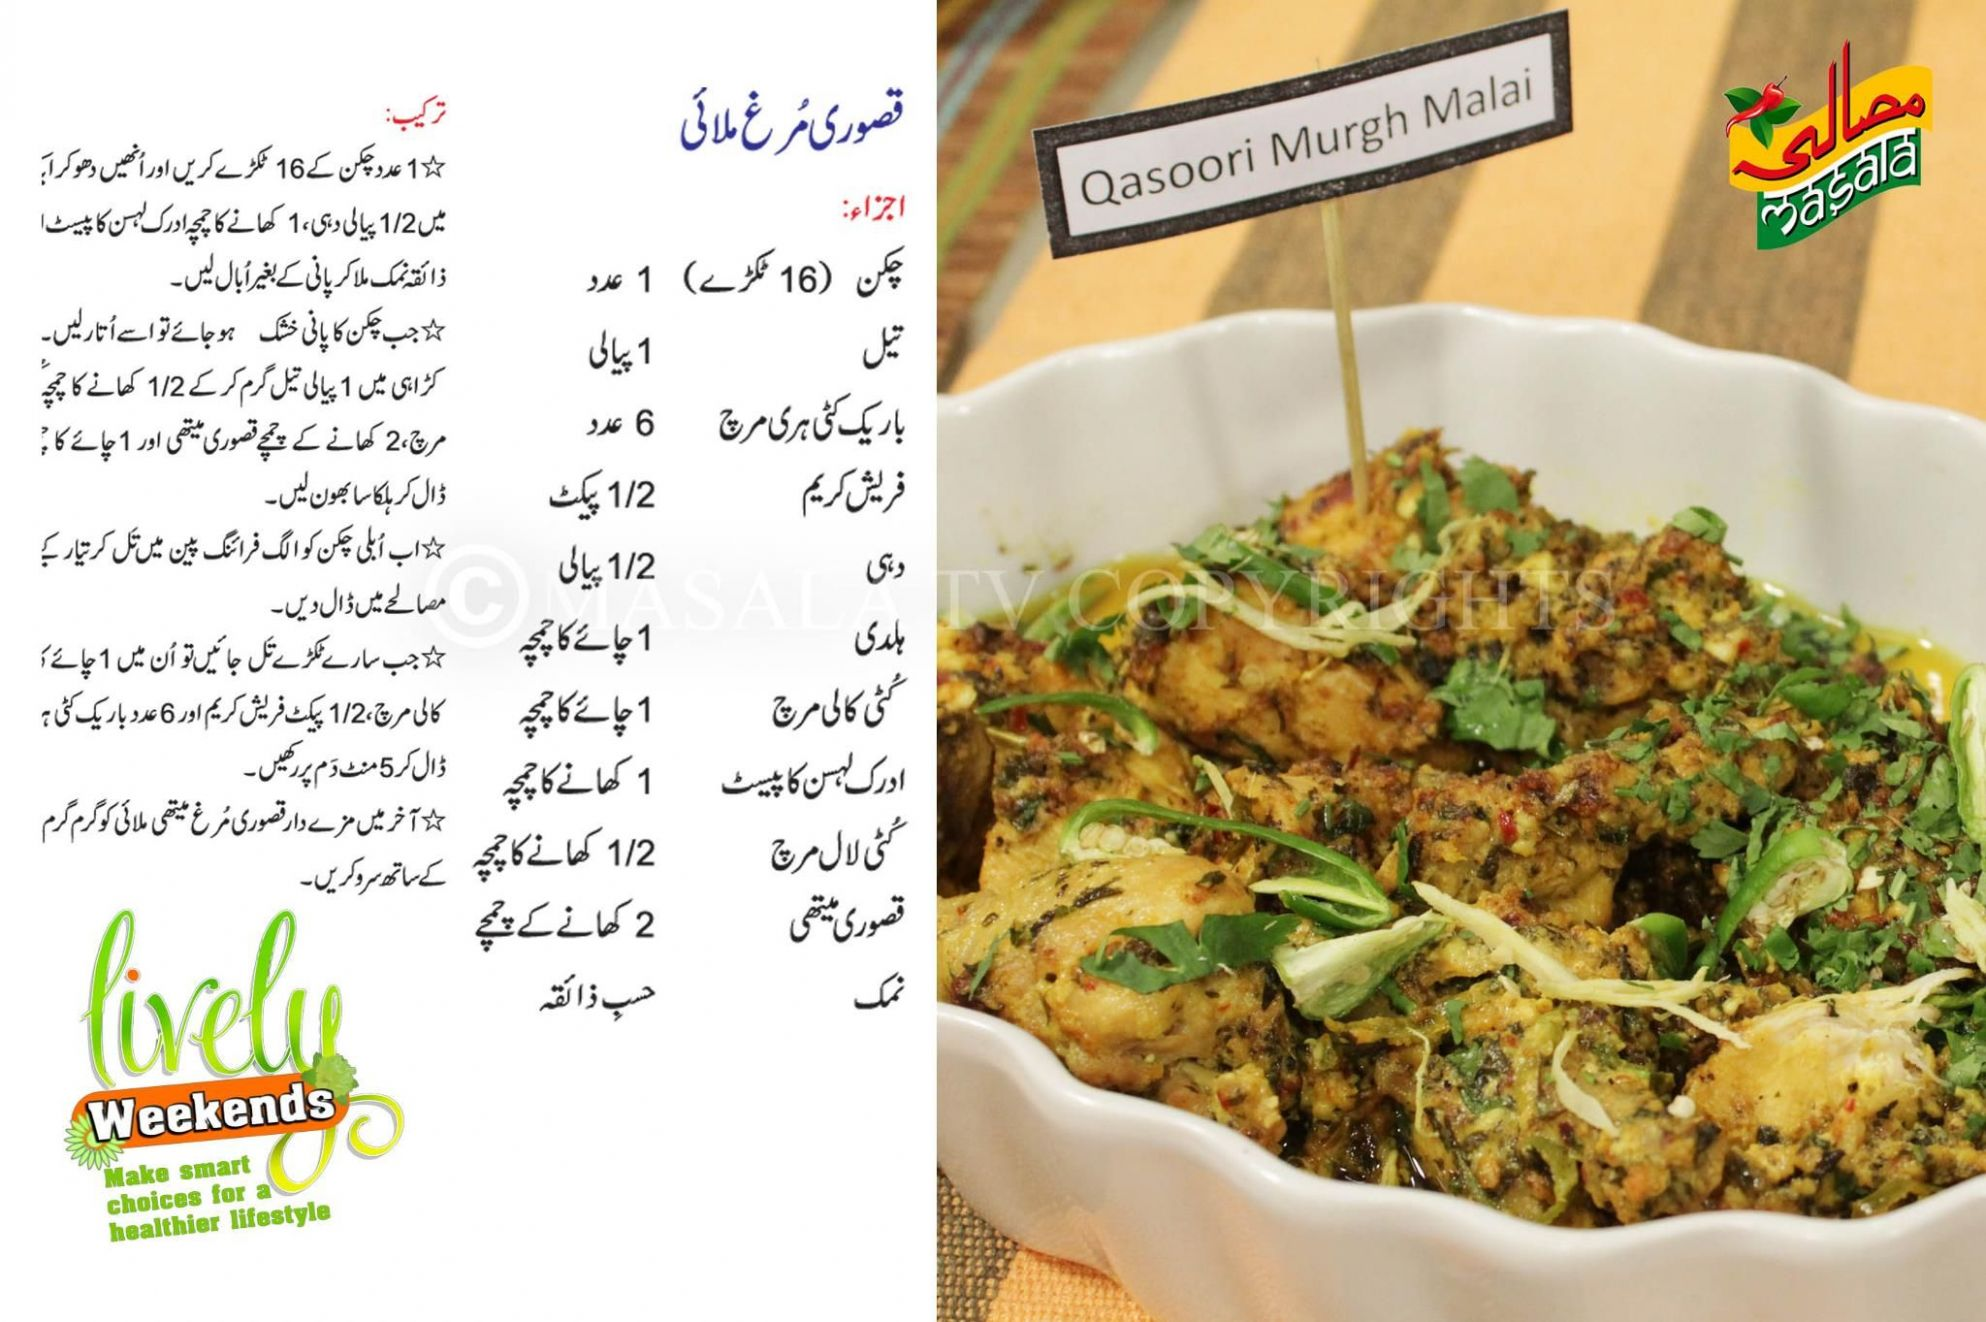 Desi zaiqa by umm yaser | Masala tv recipe, Chicken recipes, Desi food - Urdu Recipes Masala Tv